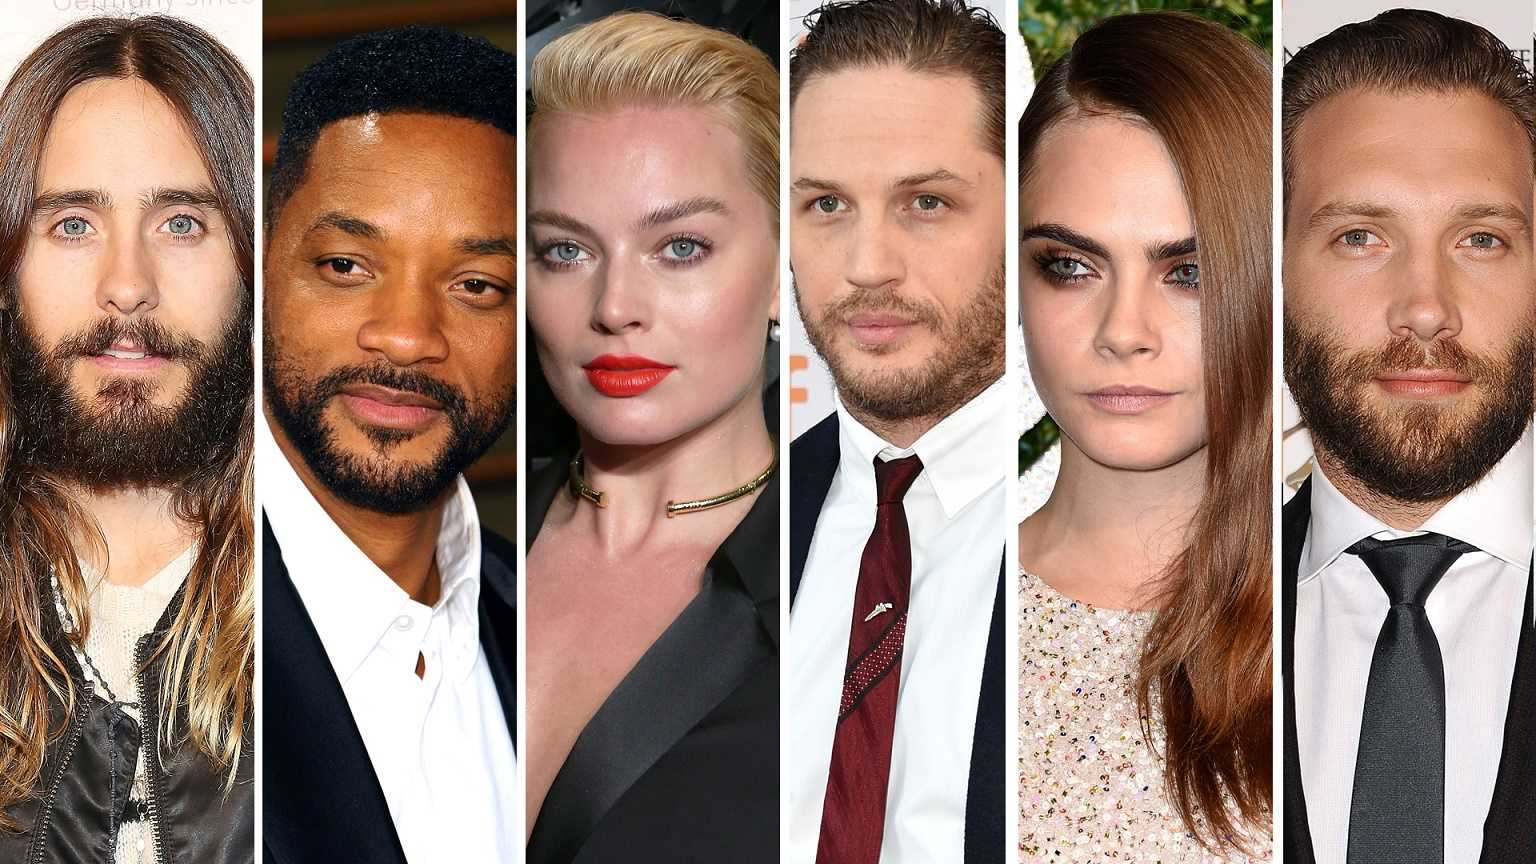 PLAYING AN ANTIHERO: (From left) The cast of Suicide Squad is pictured above: Jared Leto (the Joker), Will Smith (Deadshot), Margot Robbie (Harley Quinn), Joel Kinnaman (Rick Flag), Cara Delevingne (Enchantress), and Jai Courtney (Captain Boomerang). This strong cast of talented actors and actresses were clearly the one of the strongest aspects of the film. They were able to rise above their costuming and makeup and show all aspects of their character through their acting. Source: Variety.com